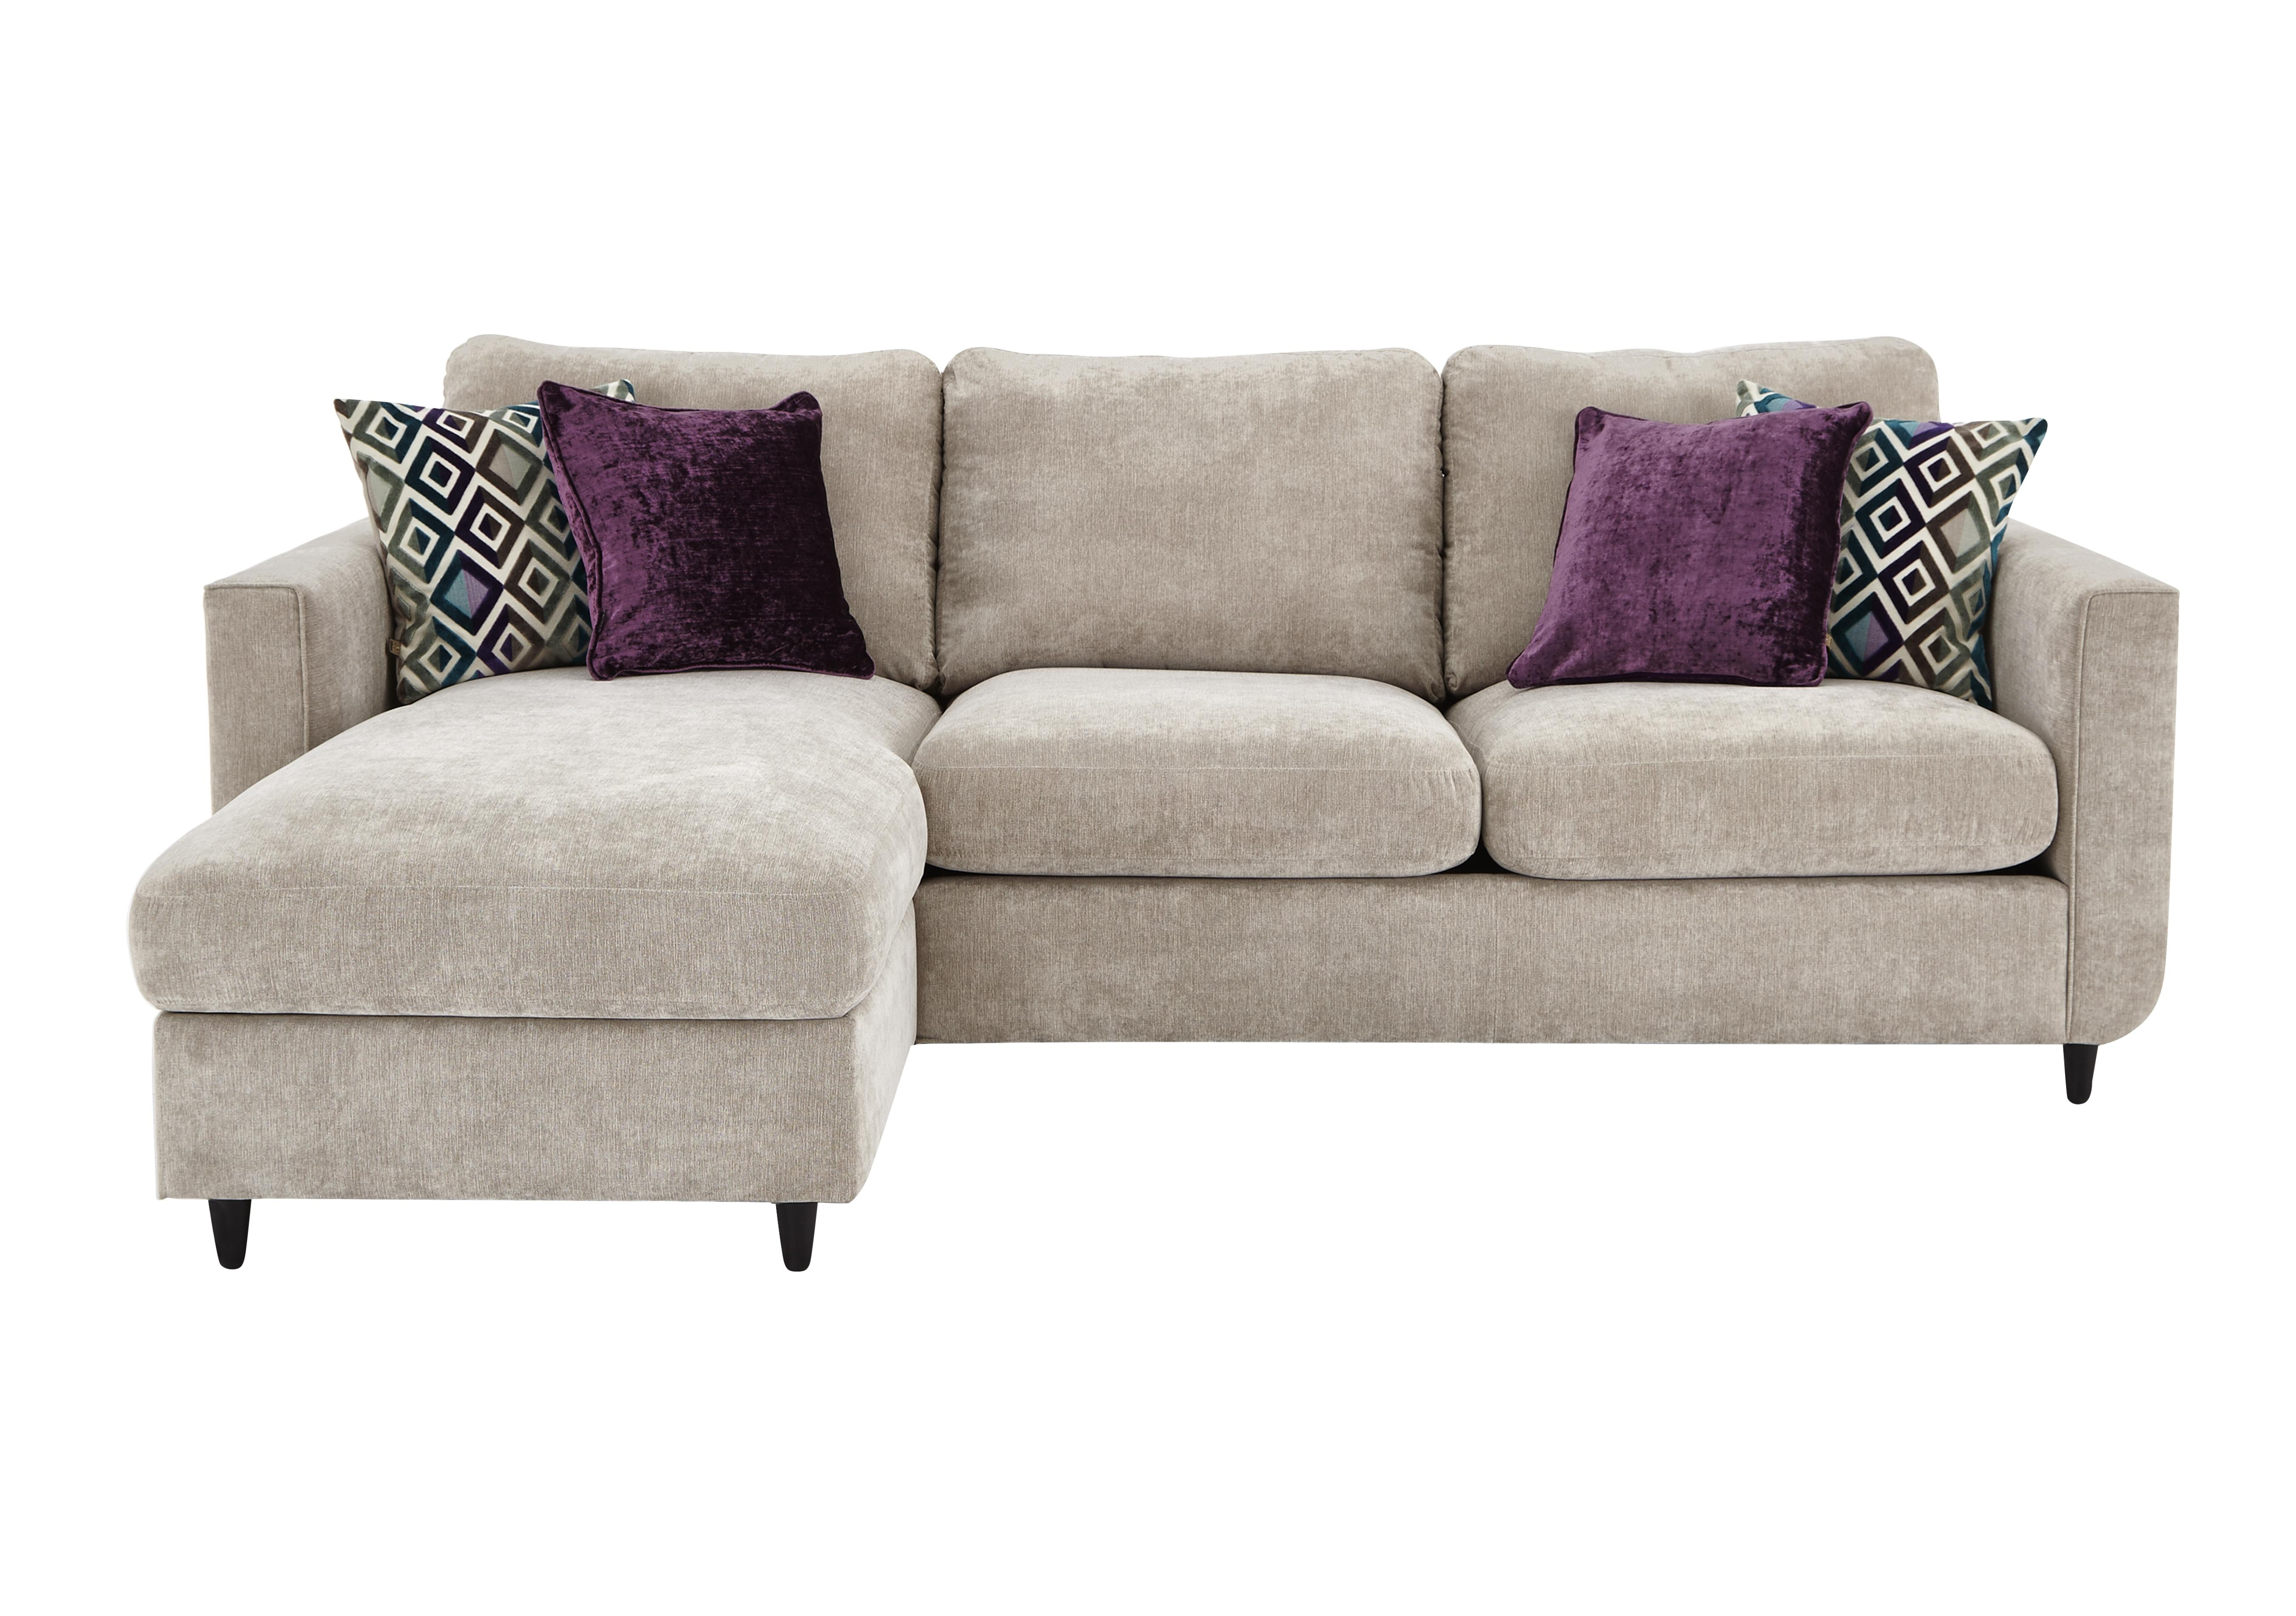 Esprit Fabric Chaise Sofa Bed with Storage Furniture Village